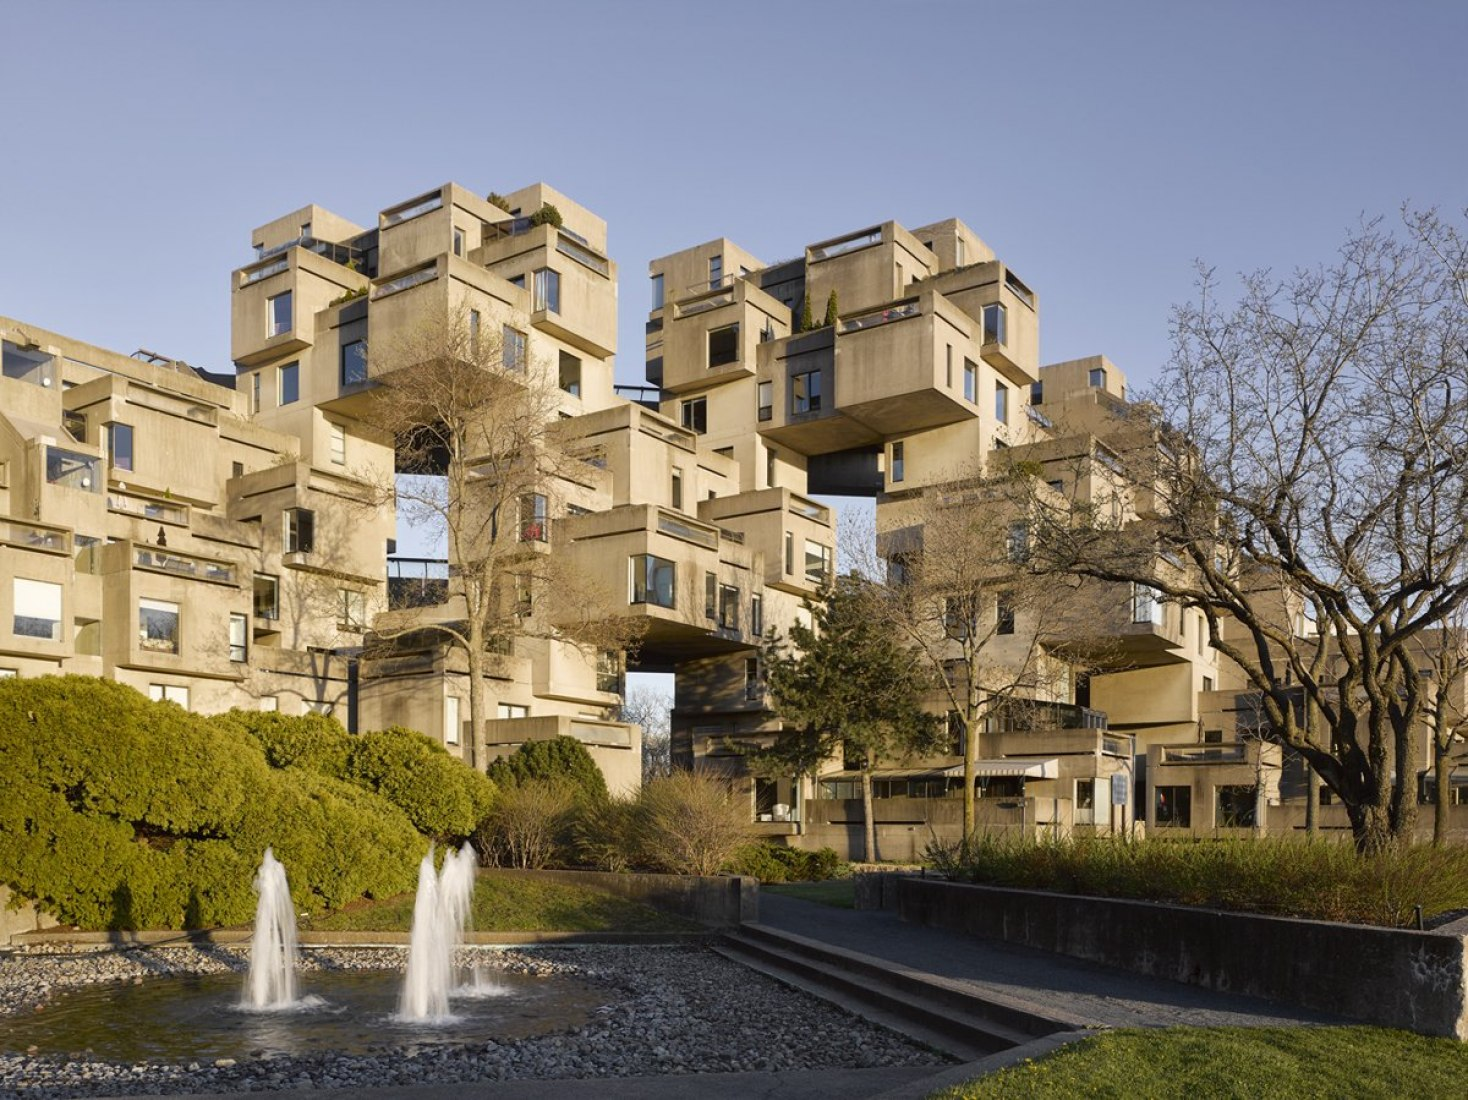 The living architecture of Moshe Safdie's Habitat 67 in Montreal by James Brittain. Photograph by James Brittain